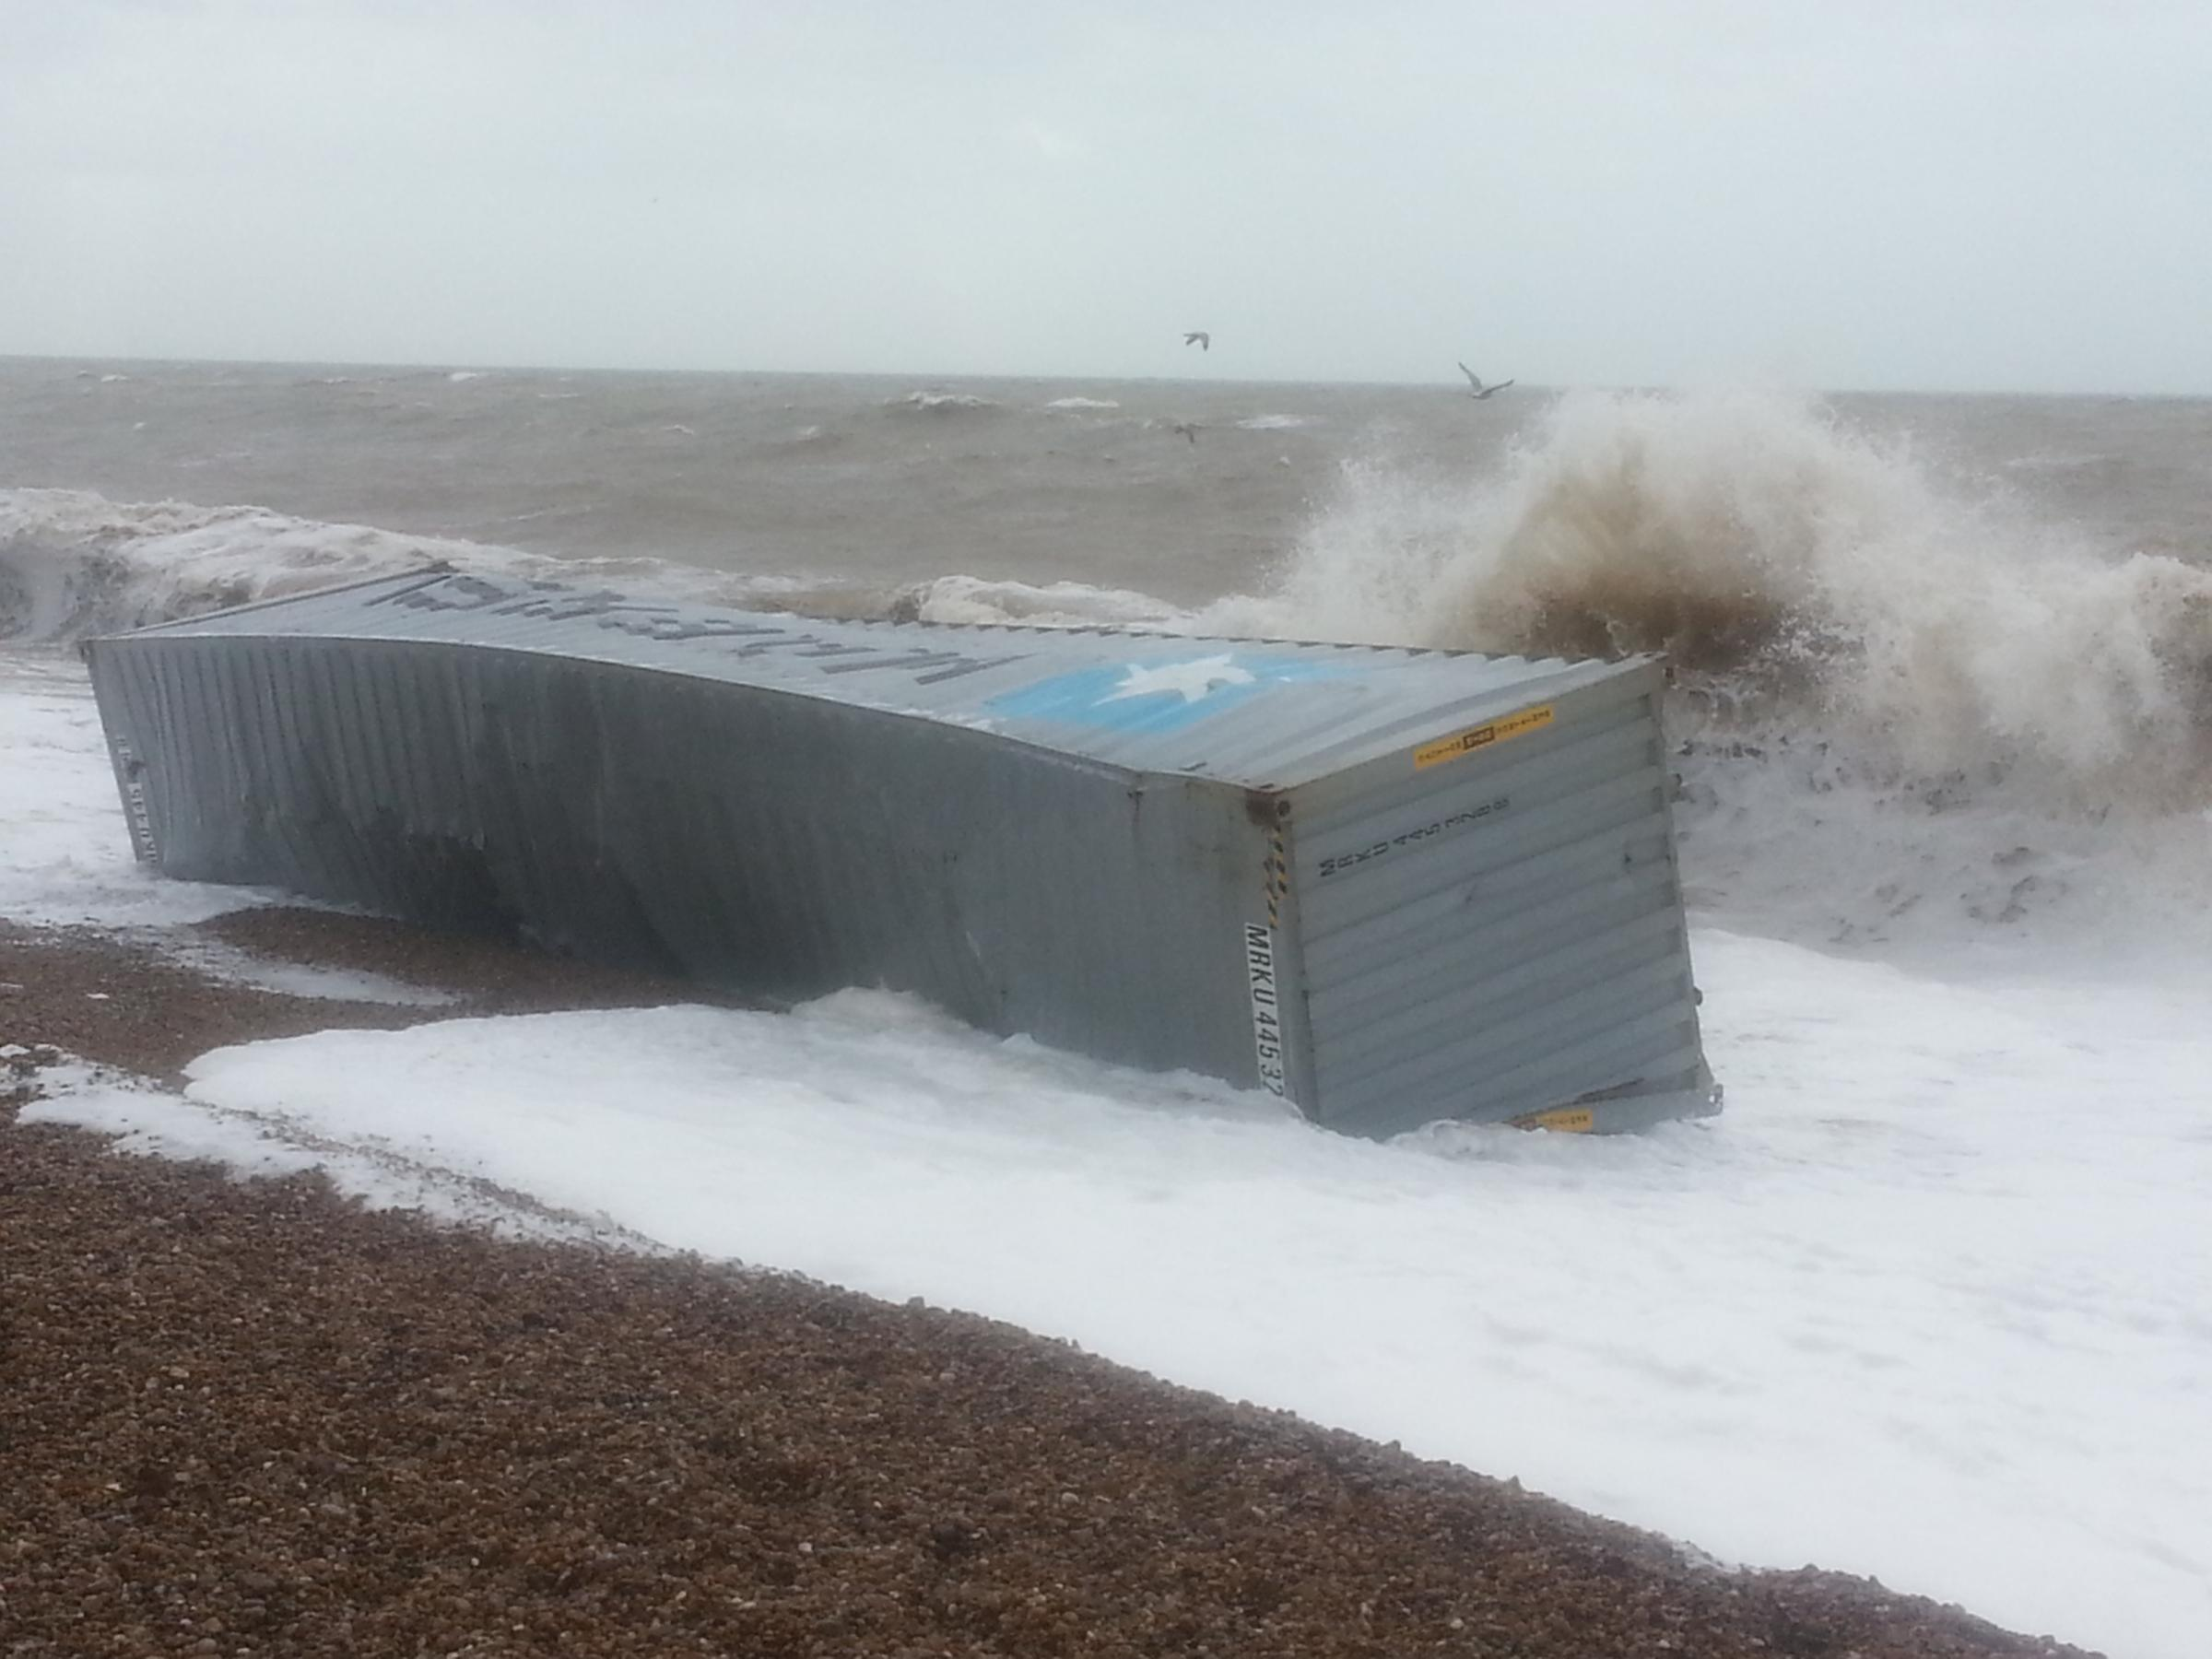 The beached shipping container at Axmouth. Photograph by Beer coastguard, MCA.